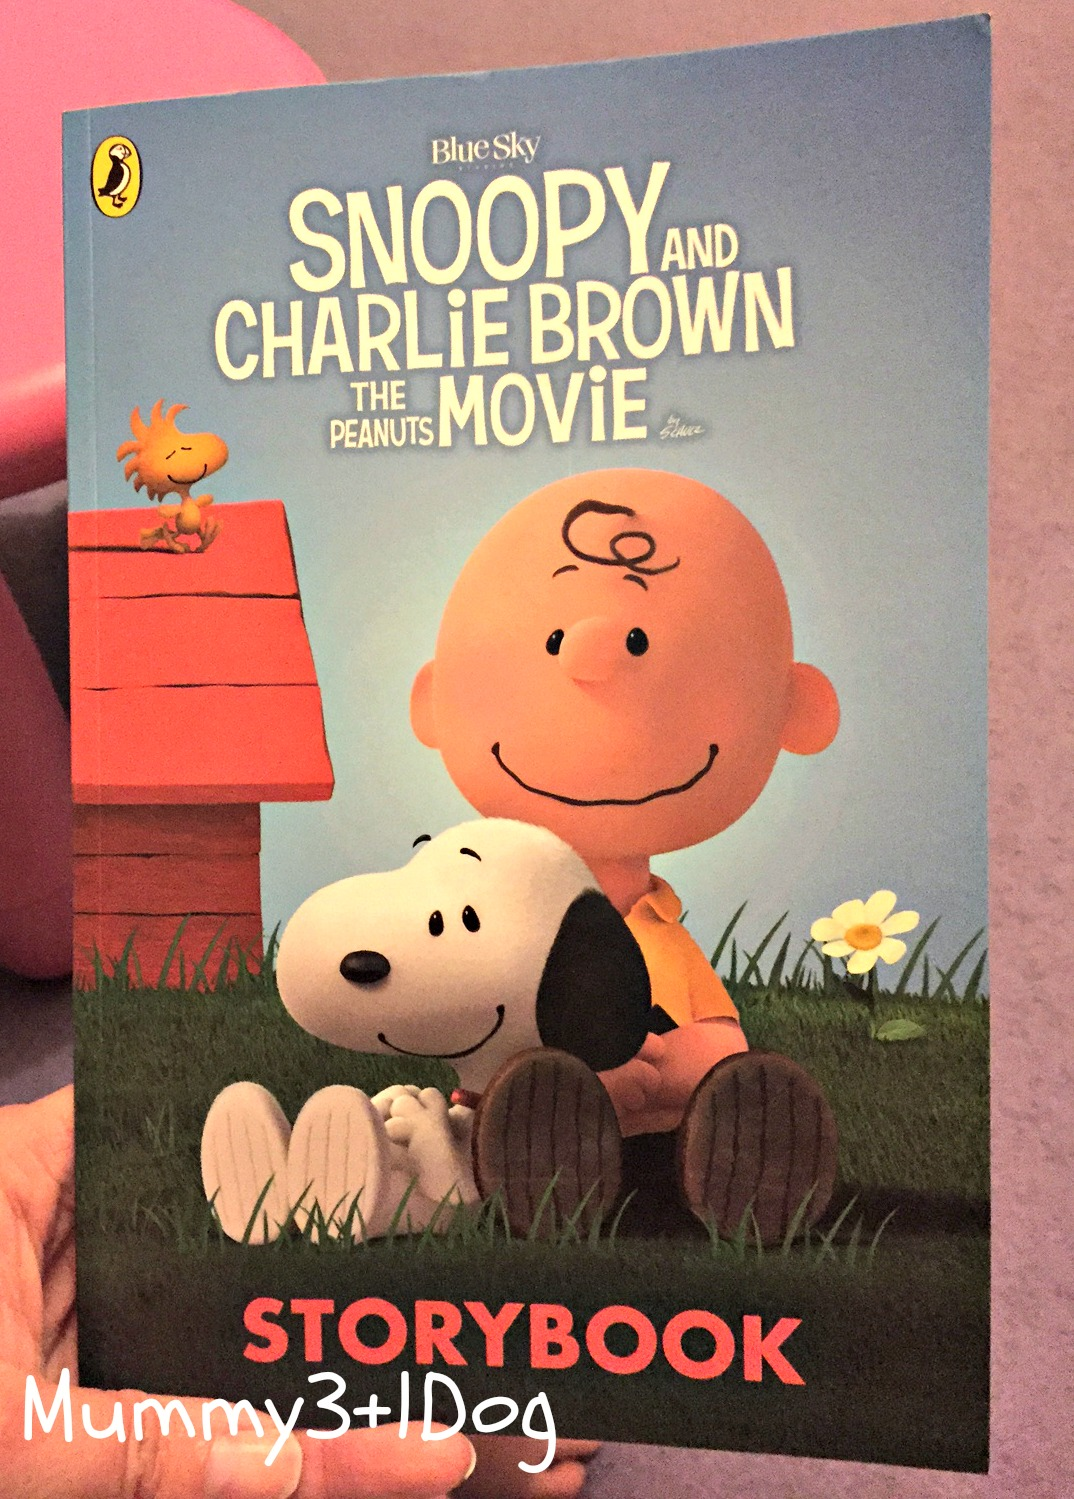 the book report charlie brown You're a good man charlie brown - the book report (letra e música para ouvir) - [lucy / a book report on peter rabbit, peter rabbit, peter ra / / [linus (overlapping / a book report on peter rabbit, peter ra / / [schroeder (overlapping /.